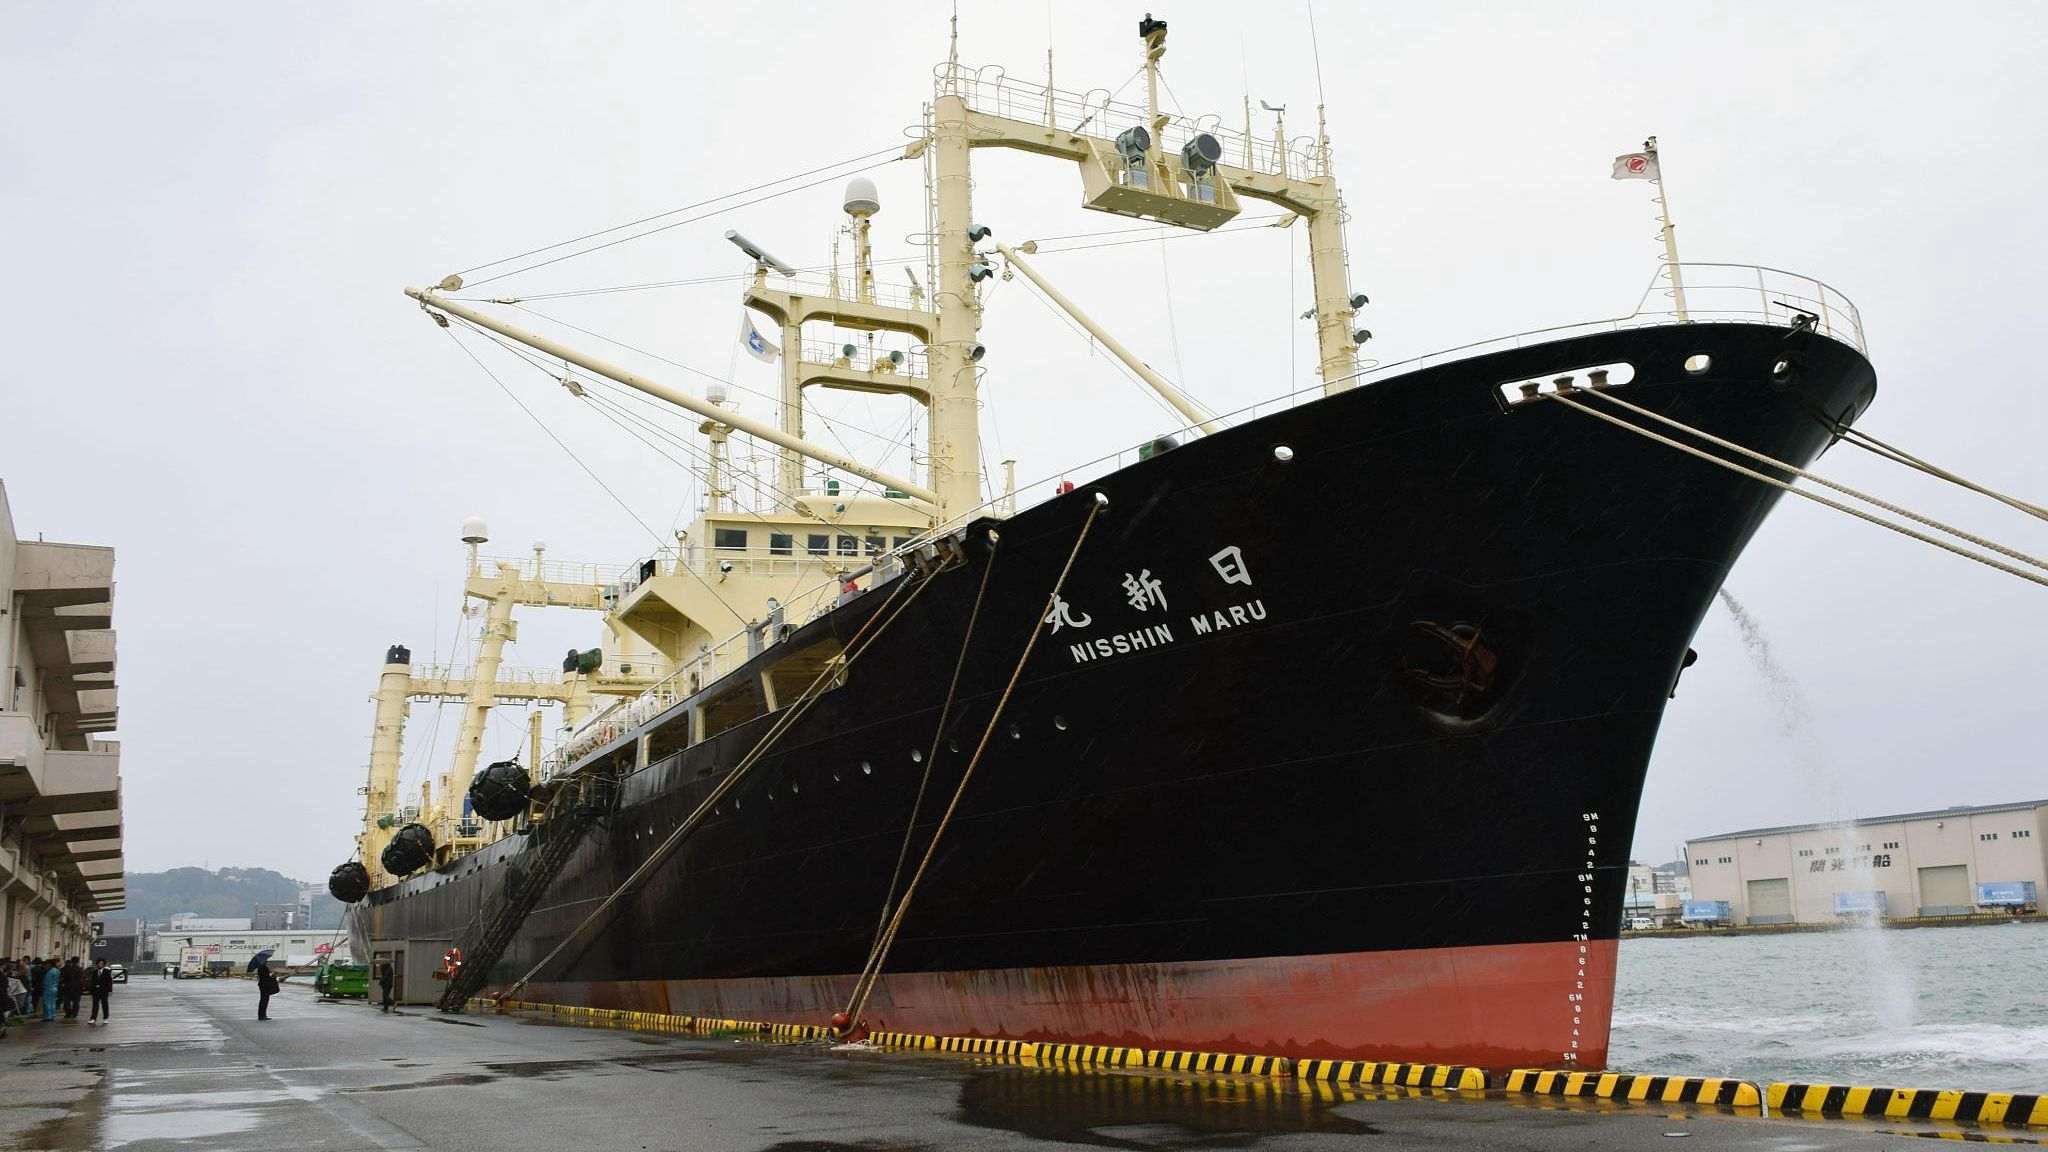 Japanese vessel leaves for last 'research' mission before commercial whaling restarts